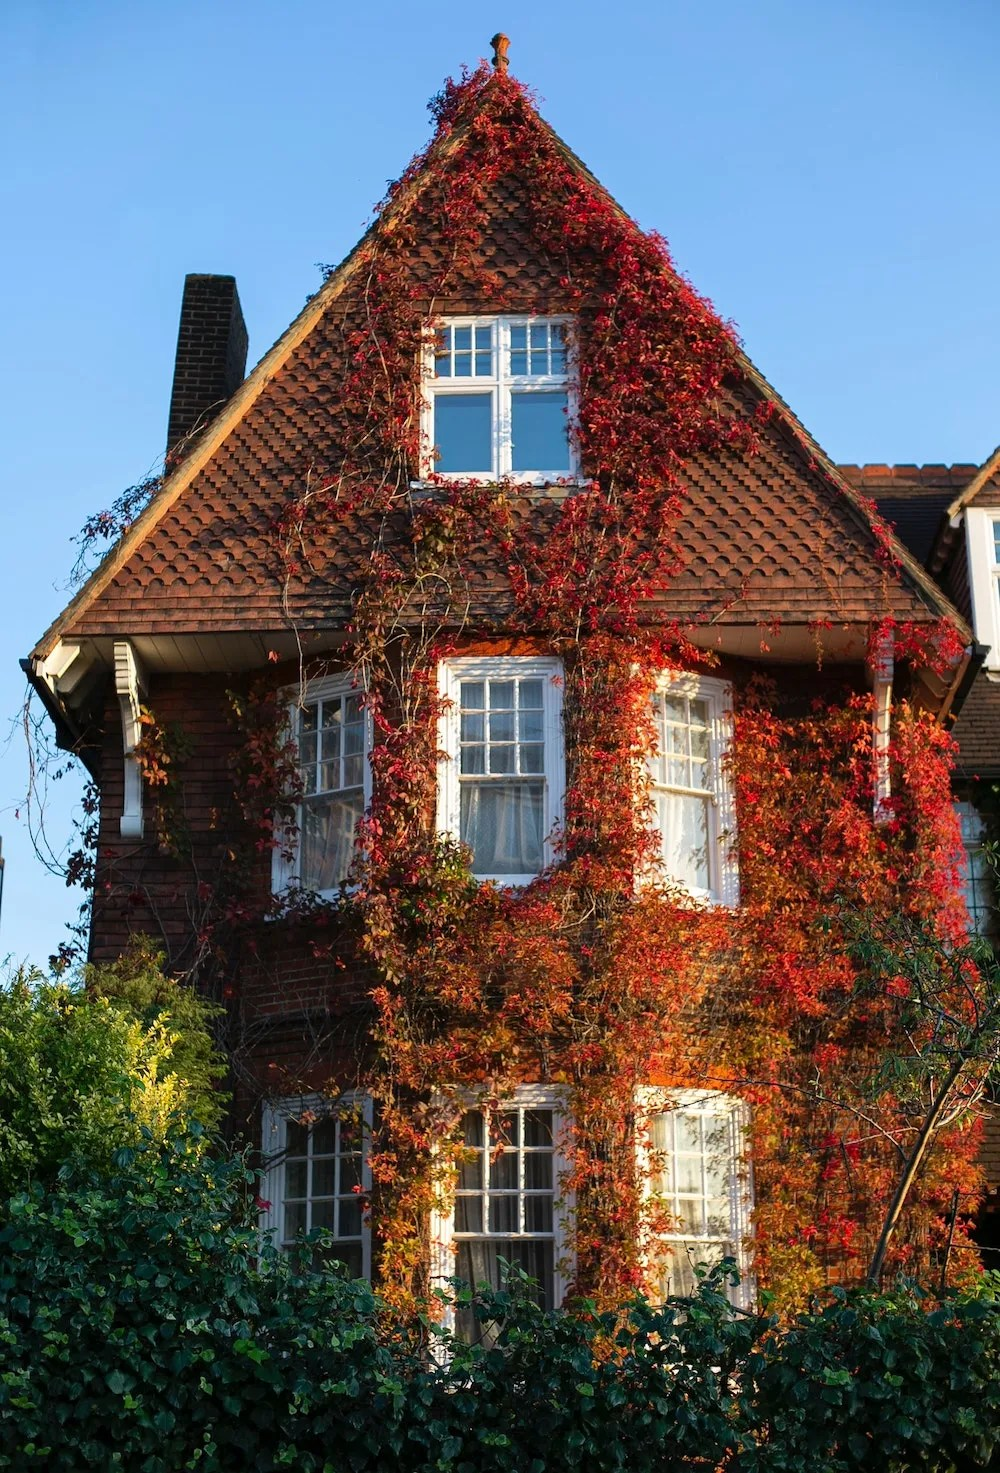 Red Ivy on a London House